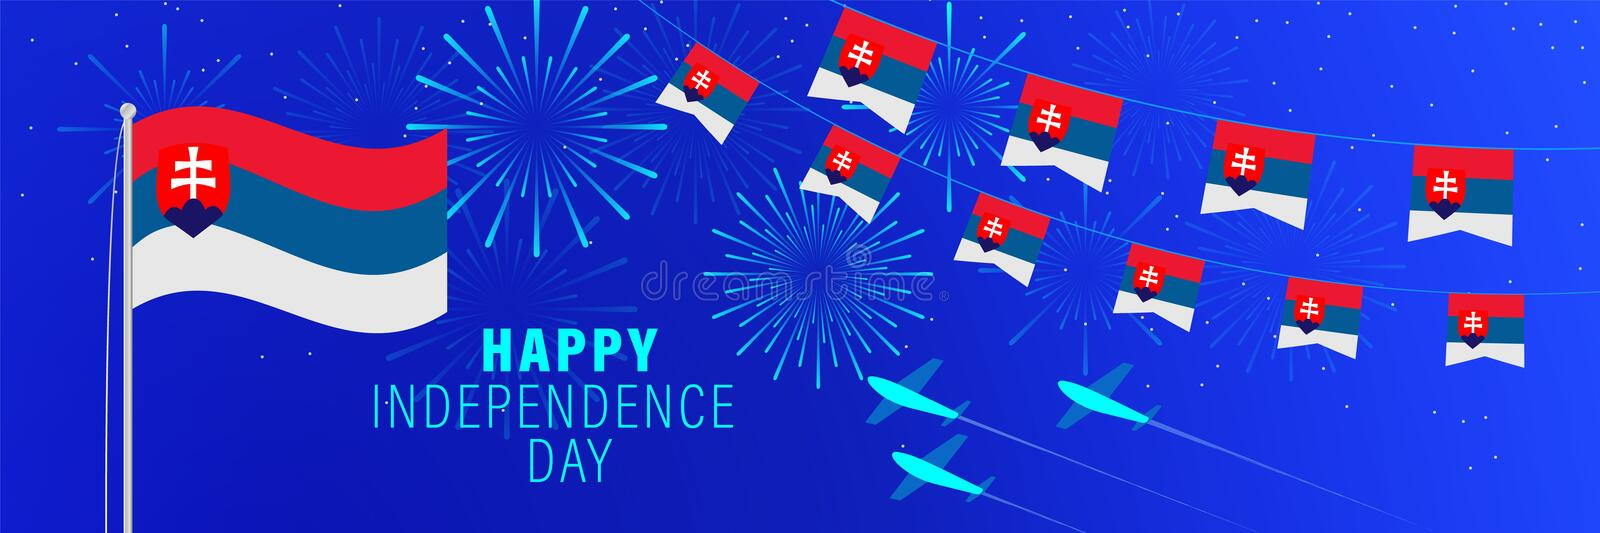 July 17 Slovakia Independence Day greeting card. Celebration background with fireworks, flags, flagpole and text vector illustration